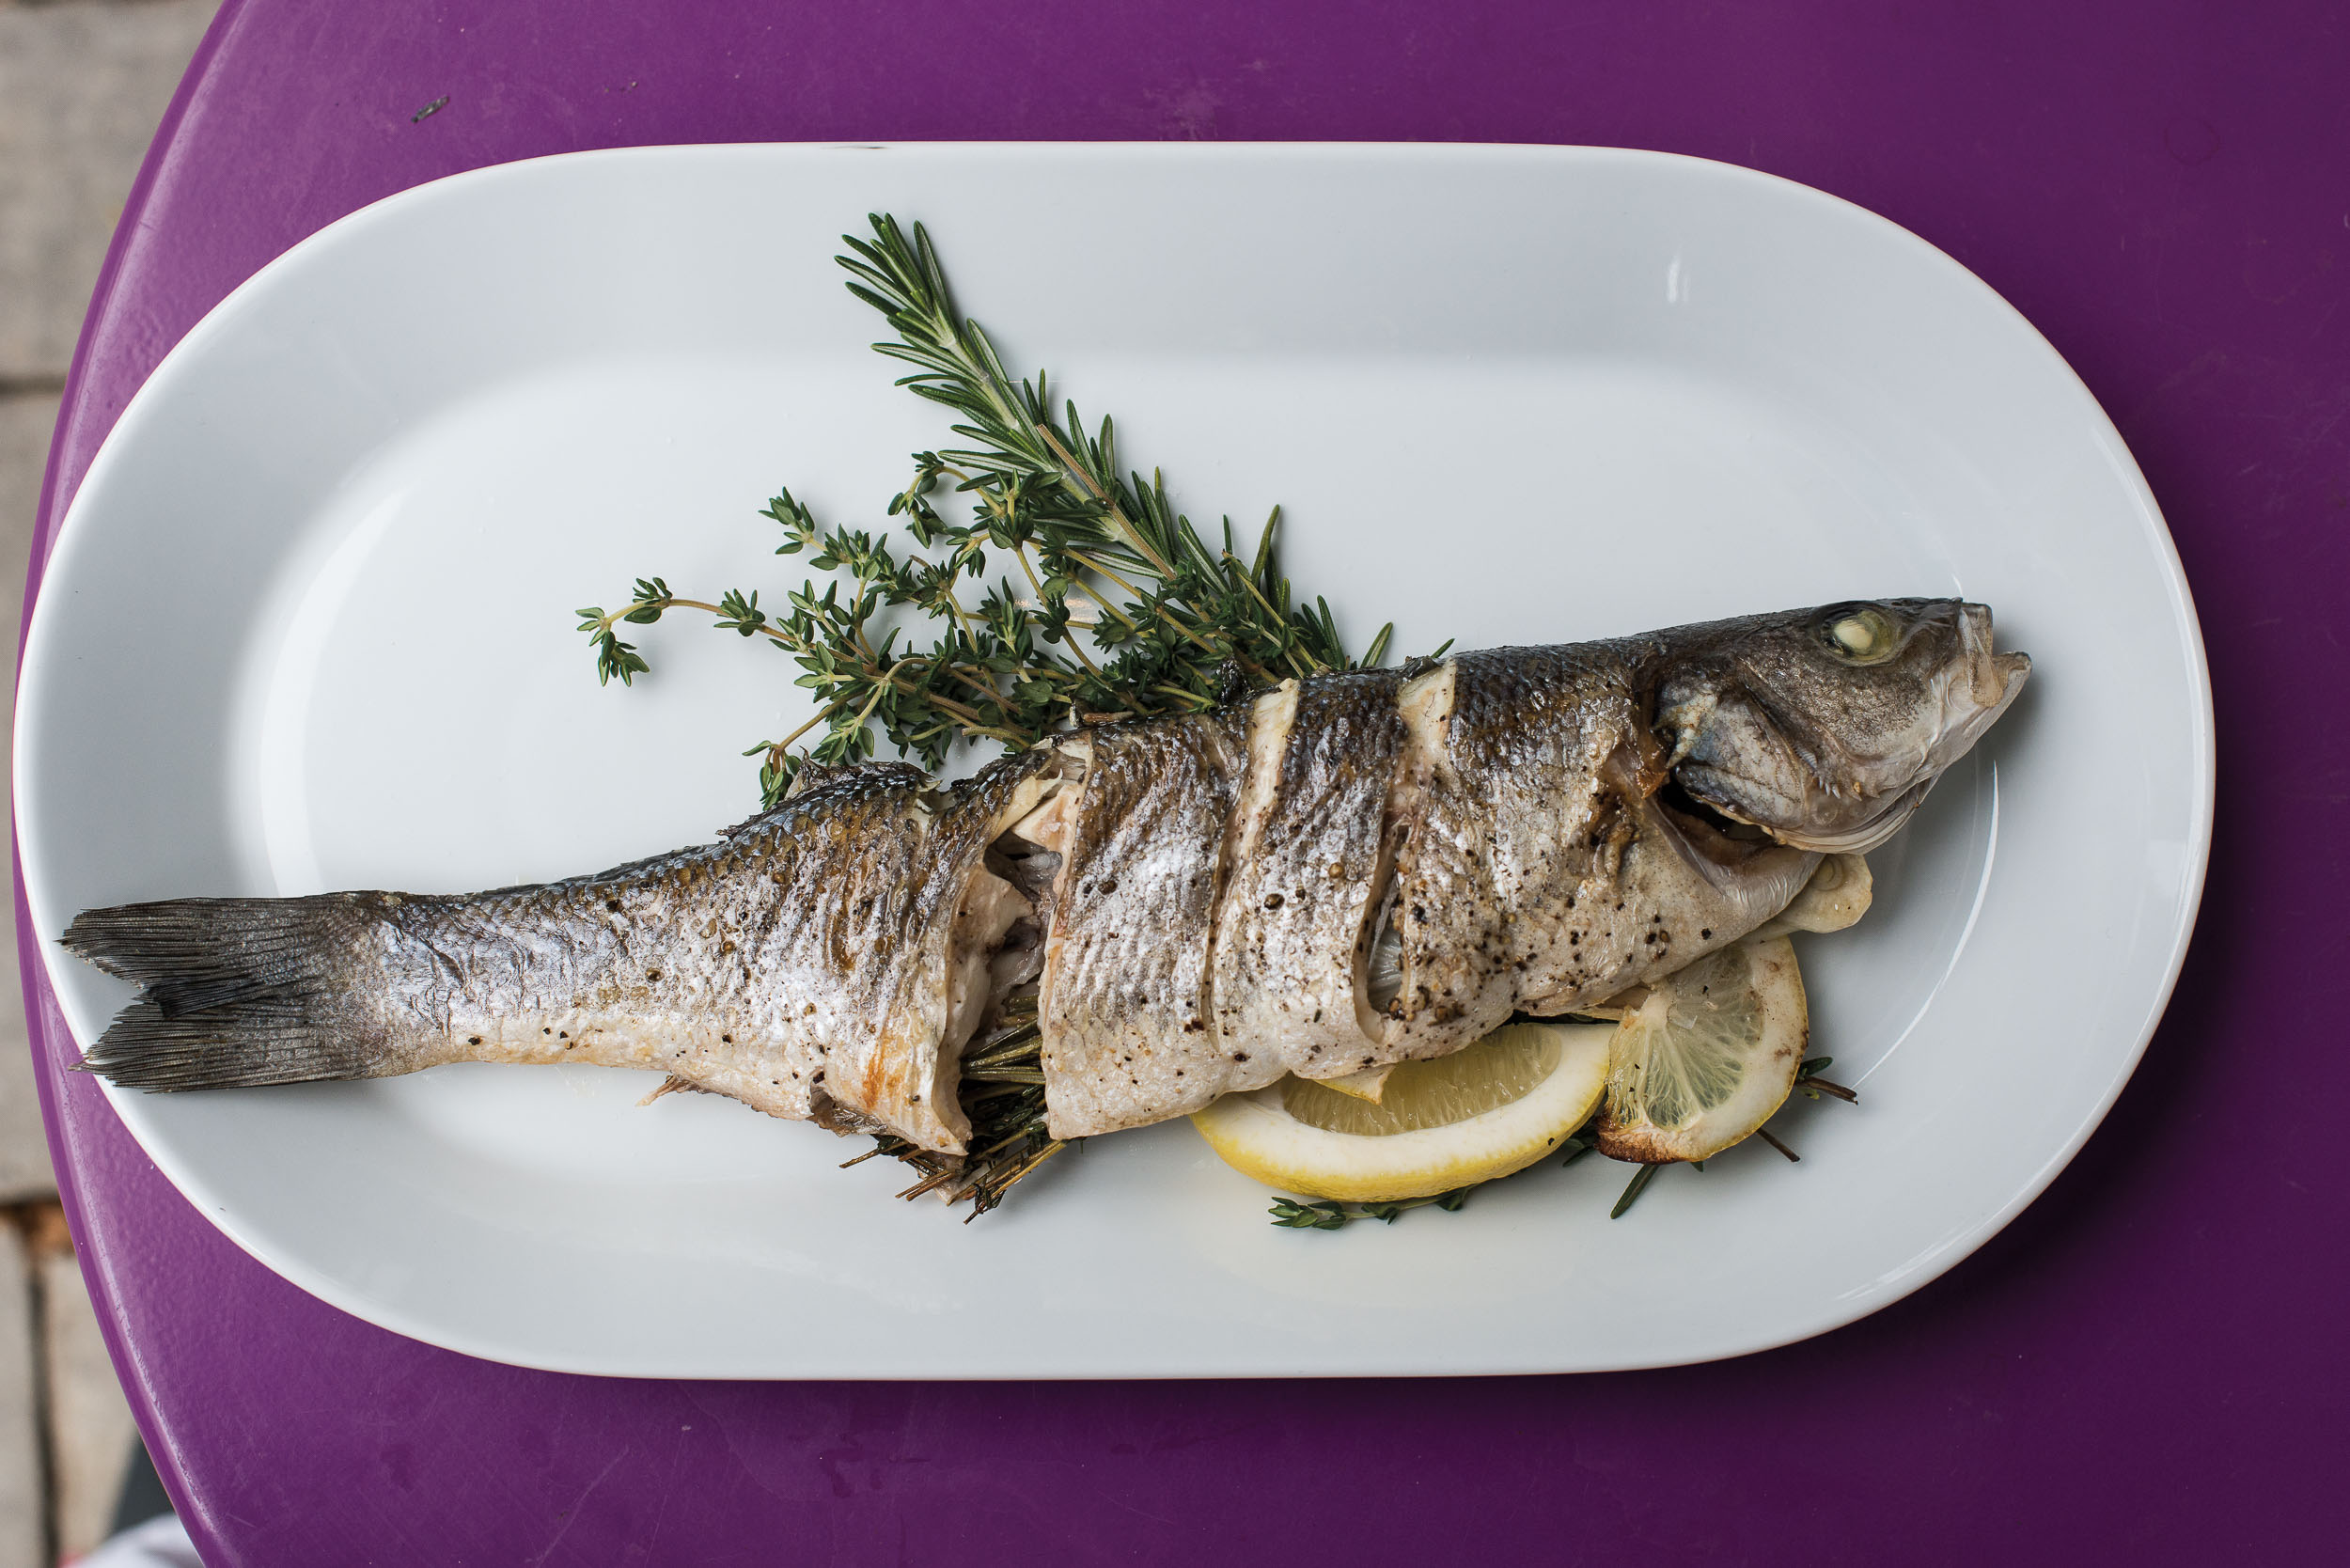 Grilled branzino with herbs and lemon